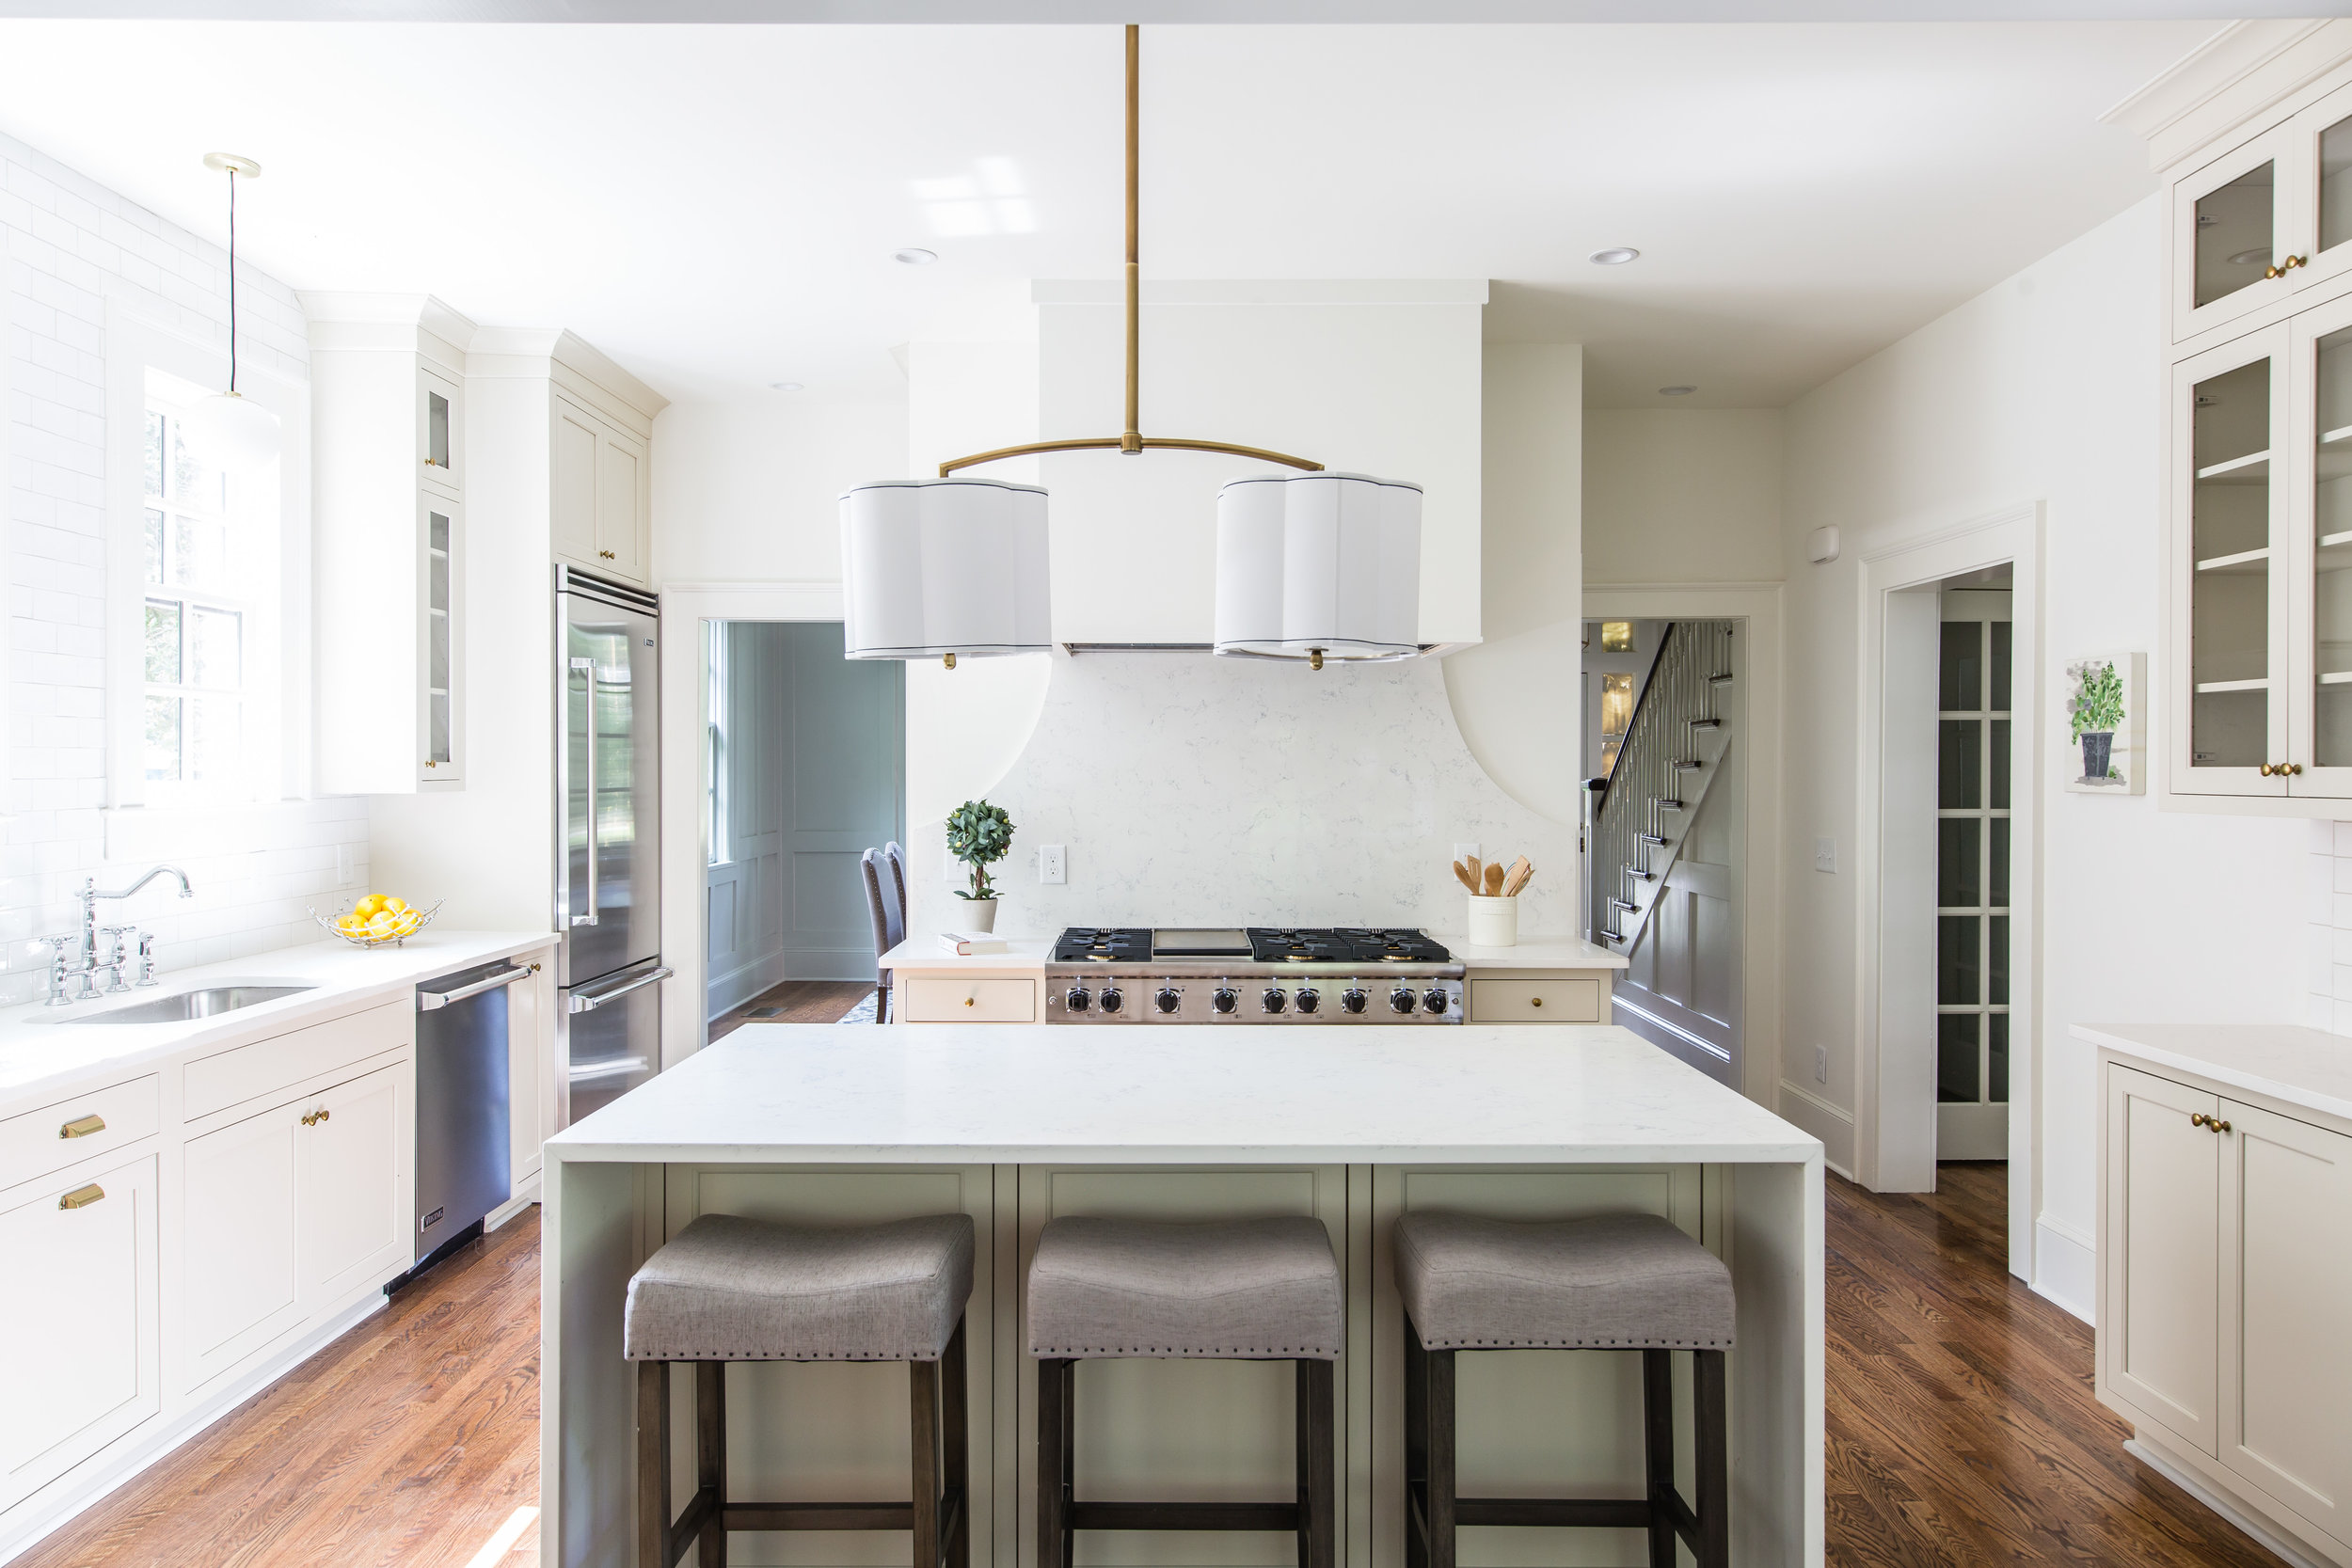 640 E Morningside-Kitchen 1.jpg